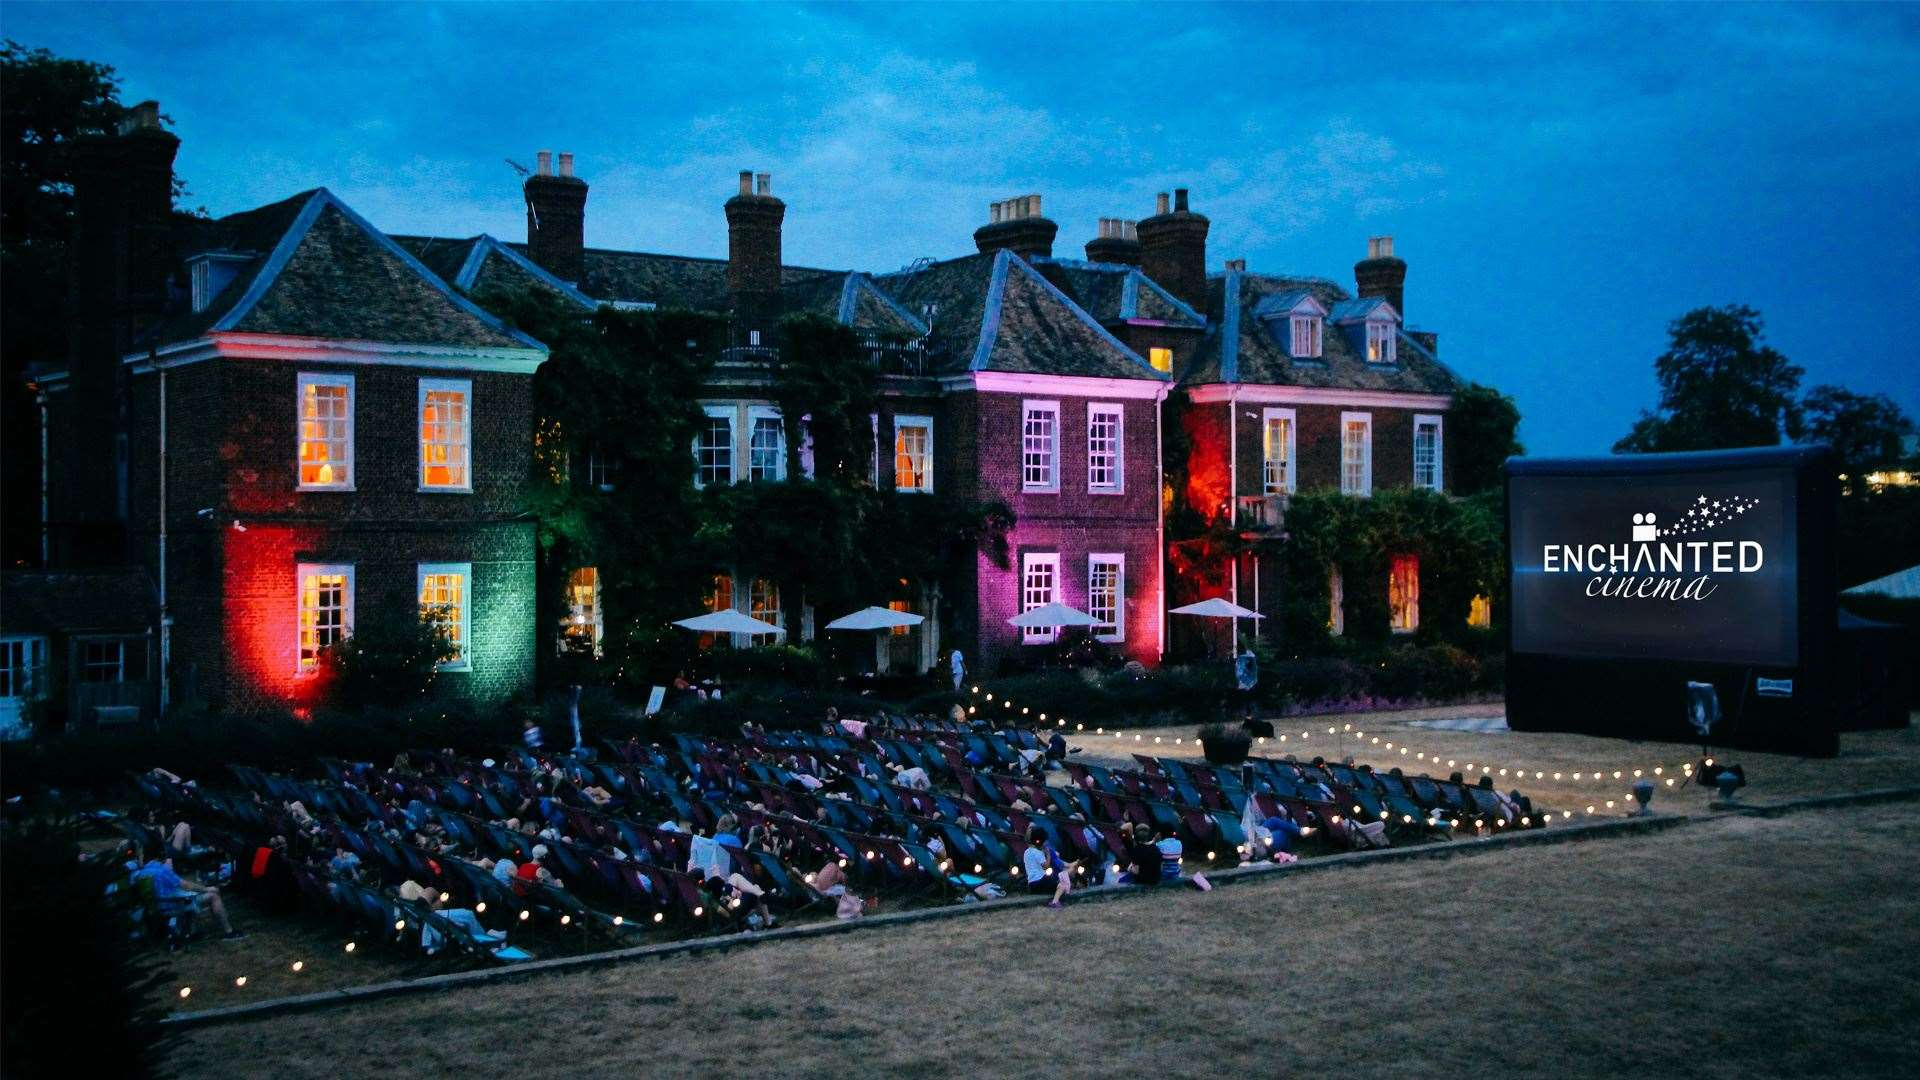 The Gonville Hotel lit up for an Enchanted Cinema outdoor screening